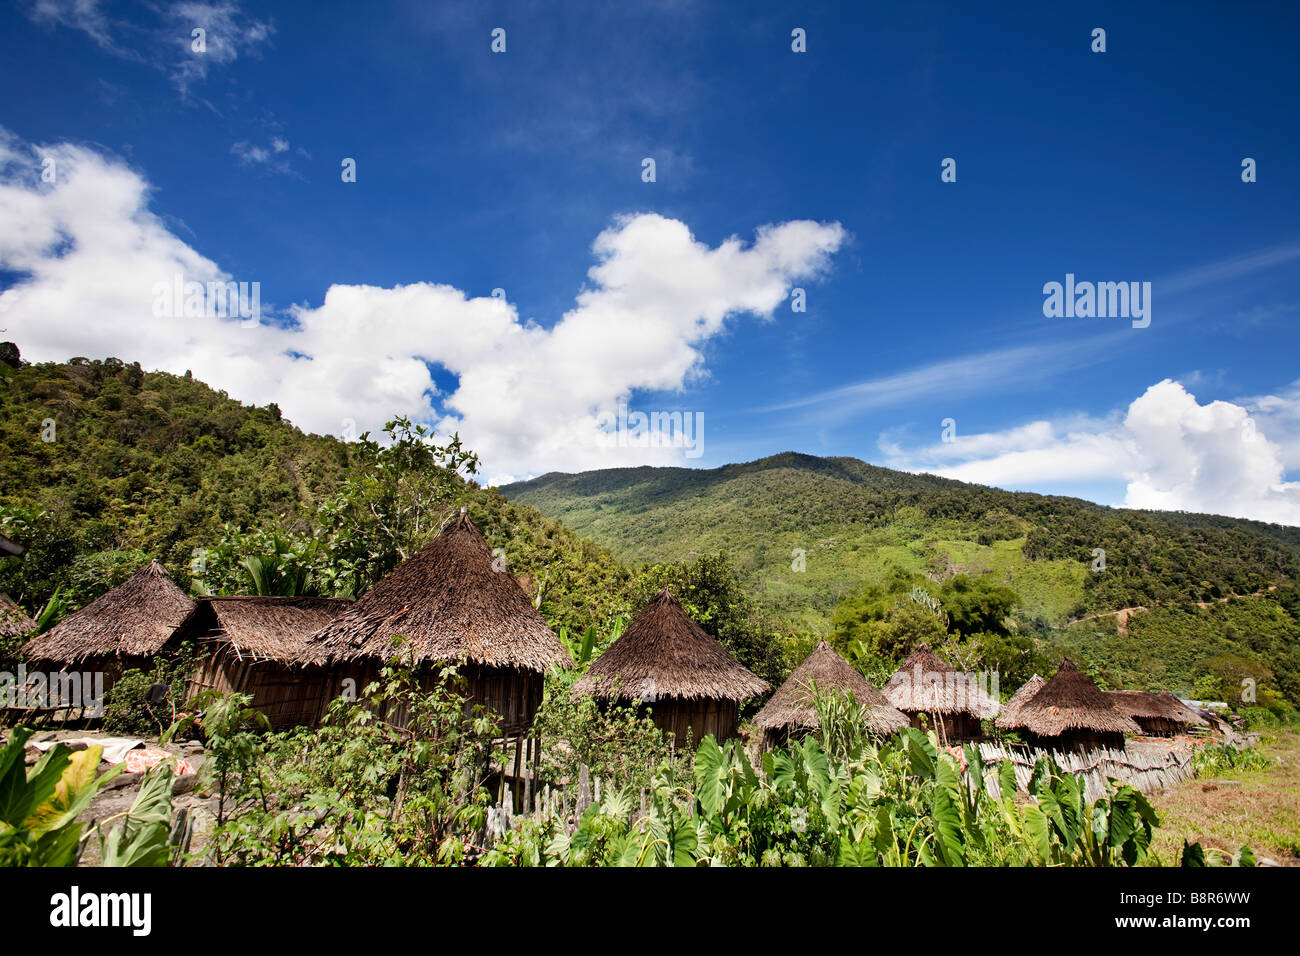 A traditional village in Papua Indonesia - Stock Image